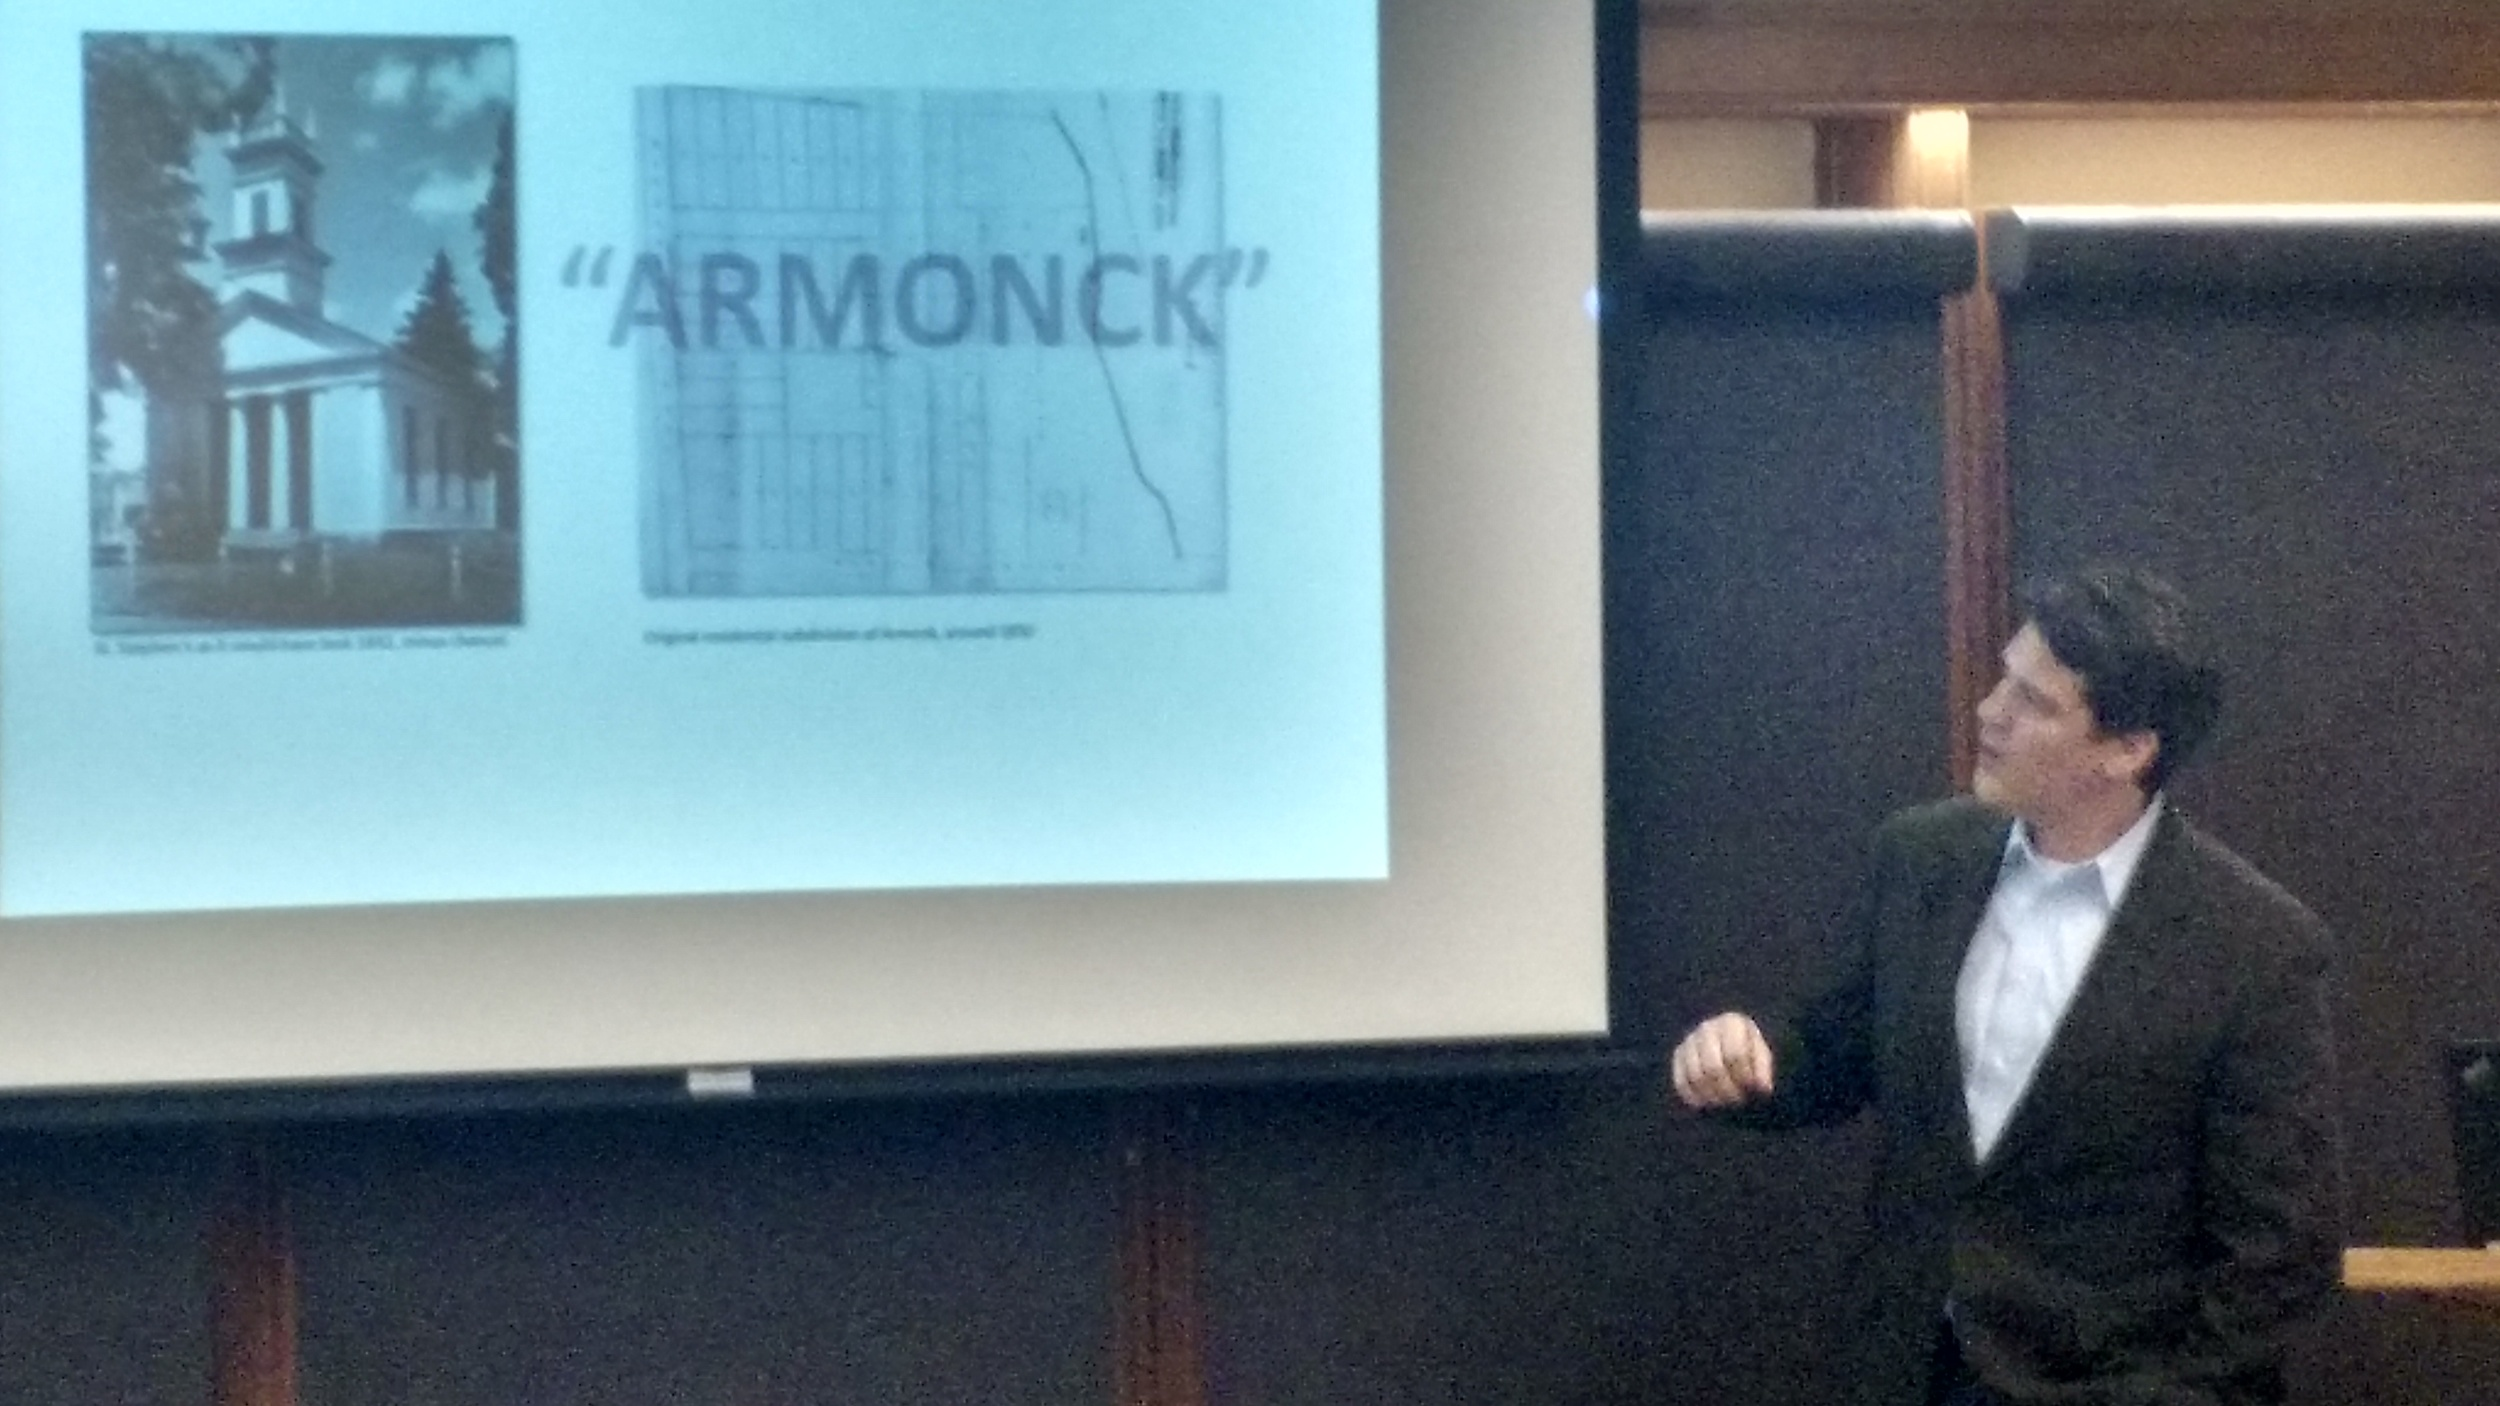 """Armonck"":  This is not a typo.  In 1850, the name originally had a ""C"" that was later dropped."